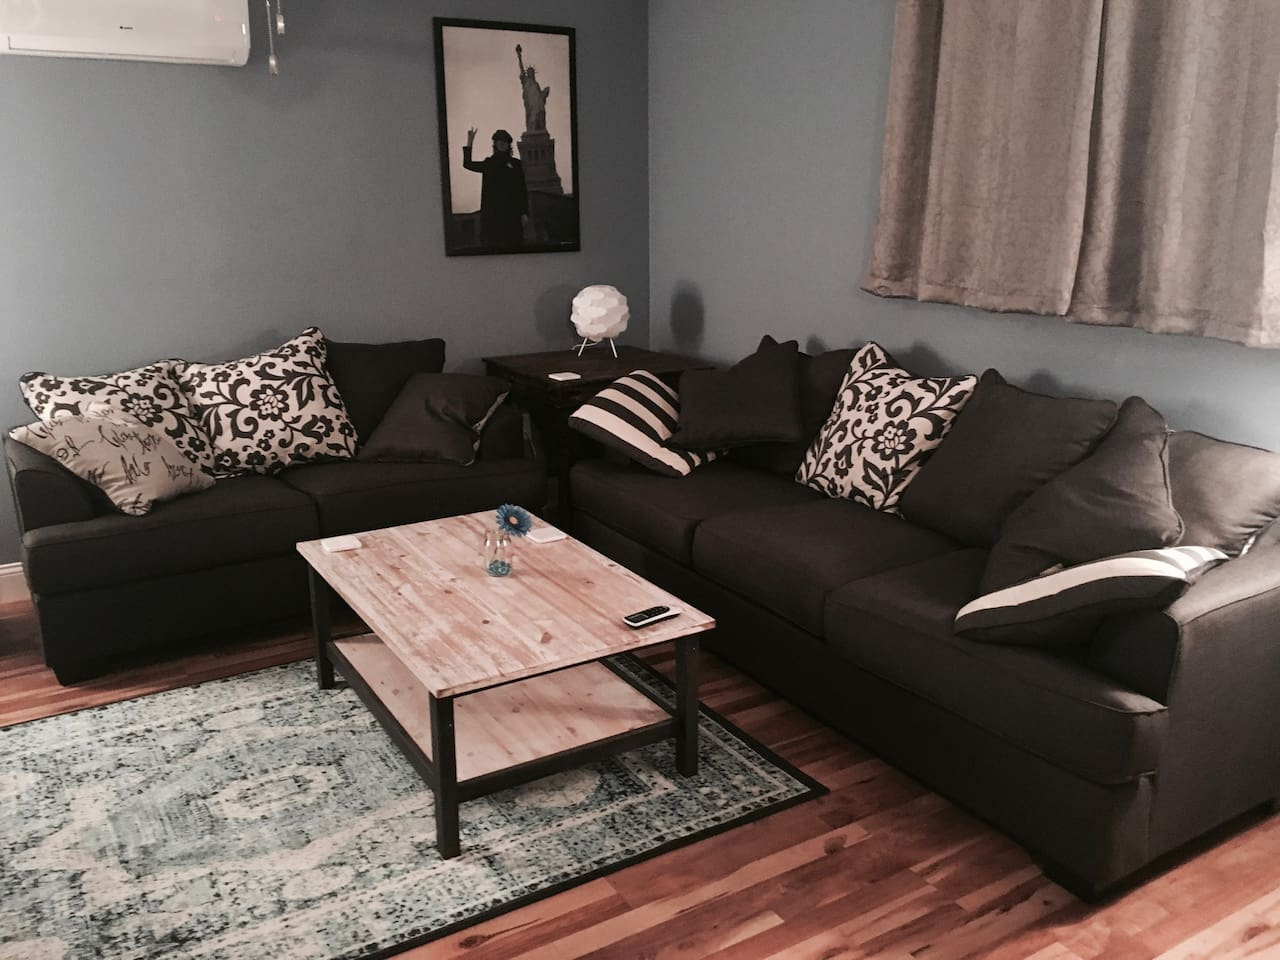 Brand new (Nov 2017) matching sofa and loveseat from Ashley furniture.